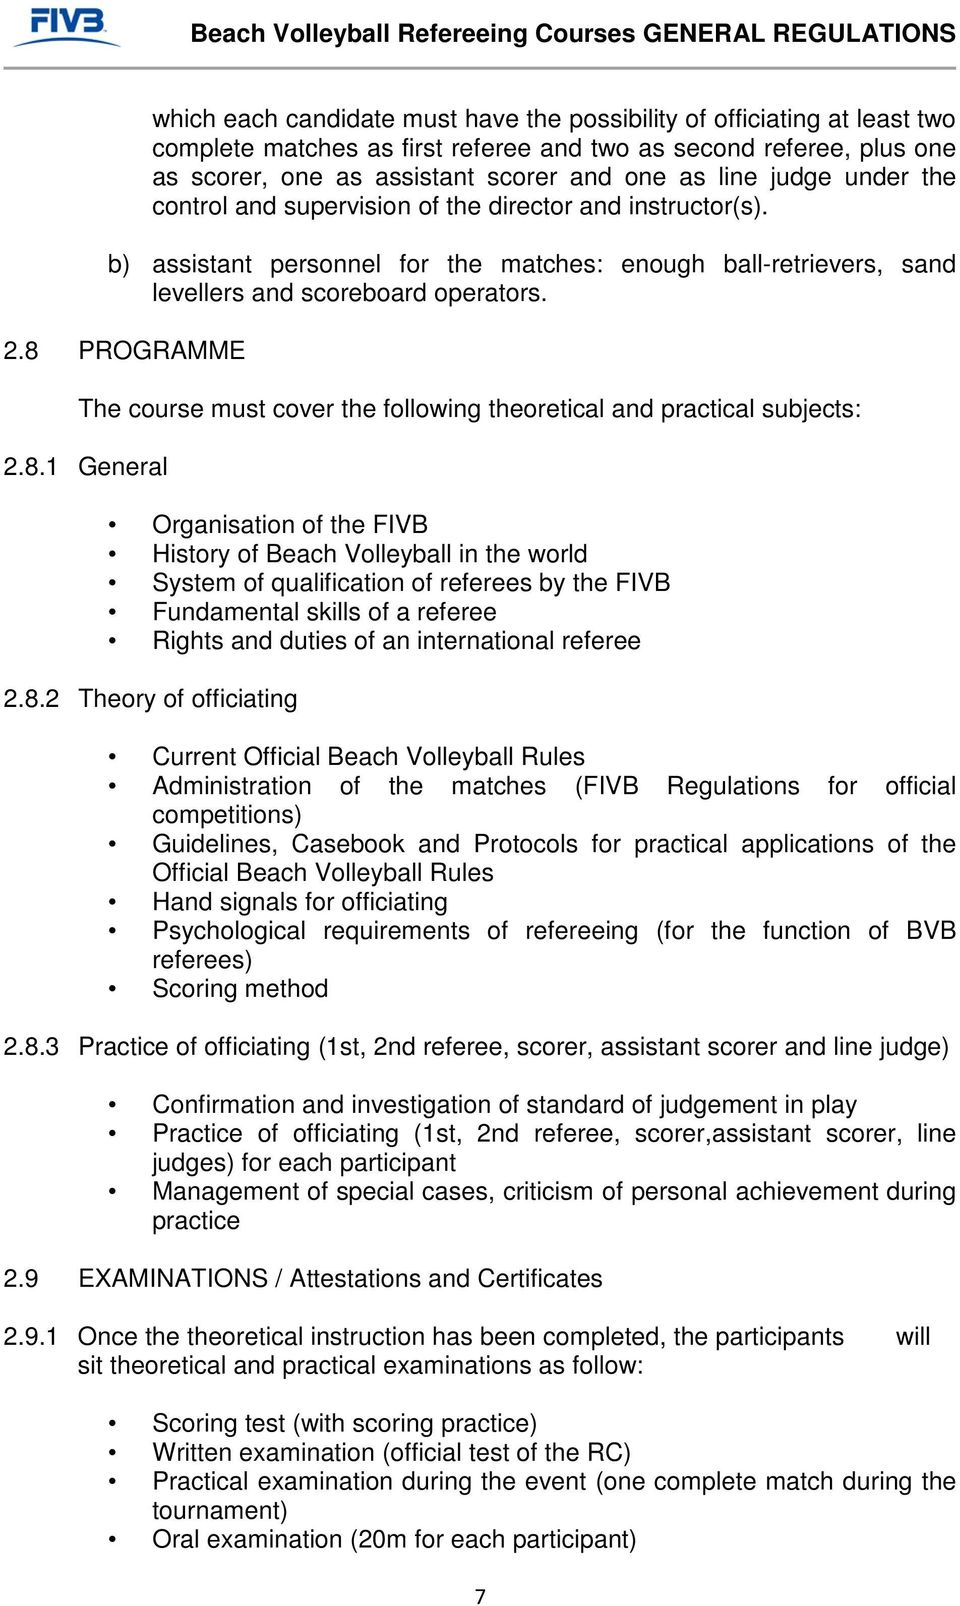 8 PROGRAMME The course must cover the following theoretical and practical subjects: 2.8.1 General Organisation of the FIVB History of Beach Volleyball in the world System of qualification of referees